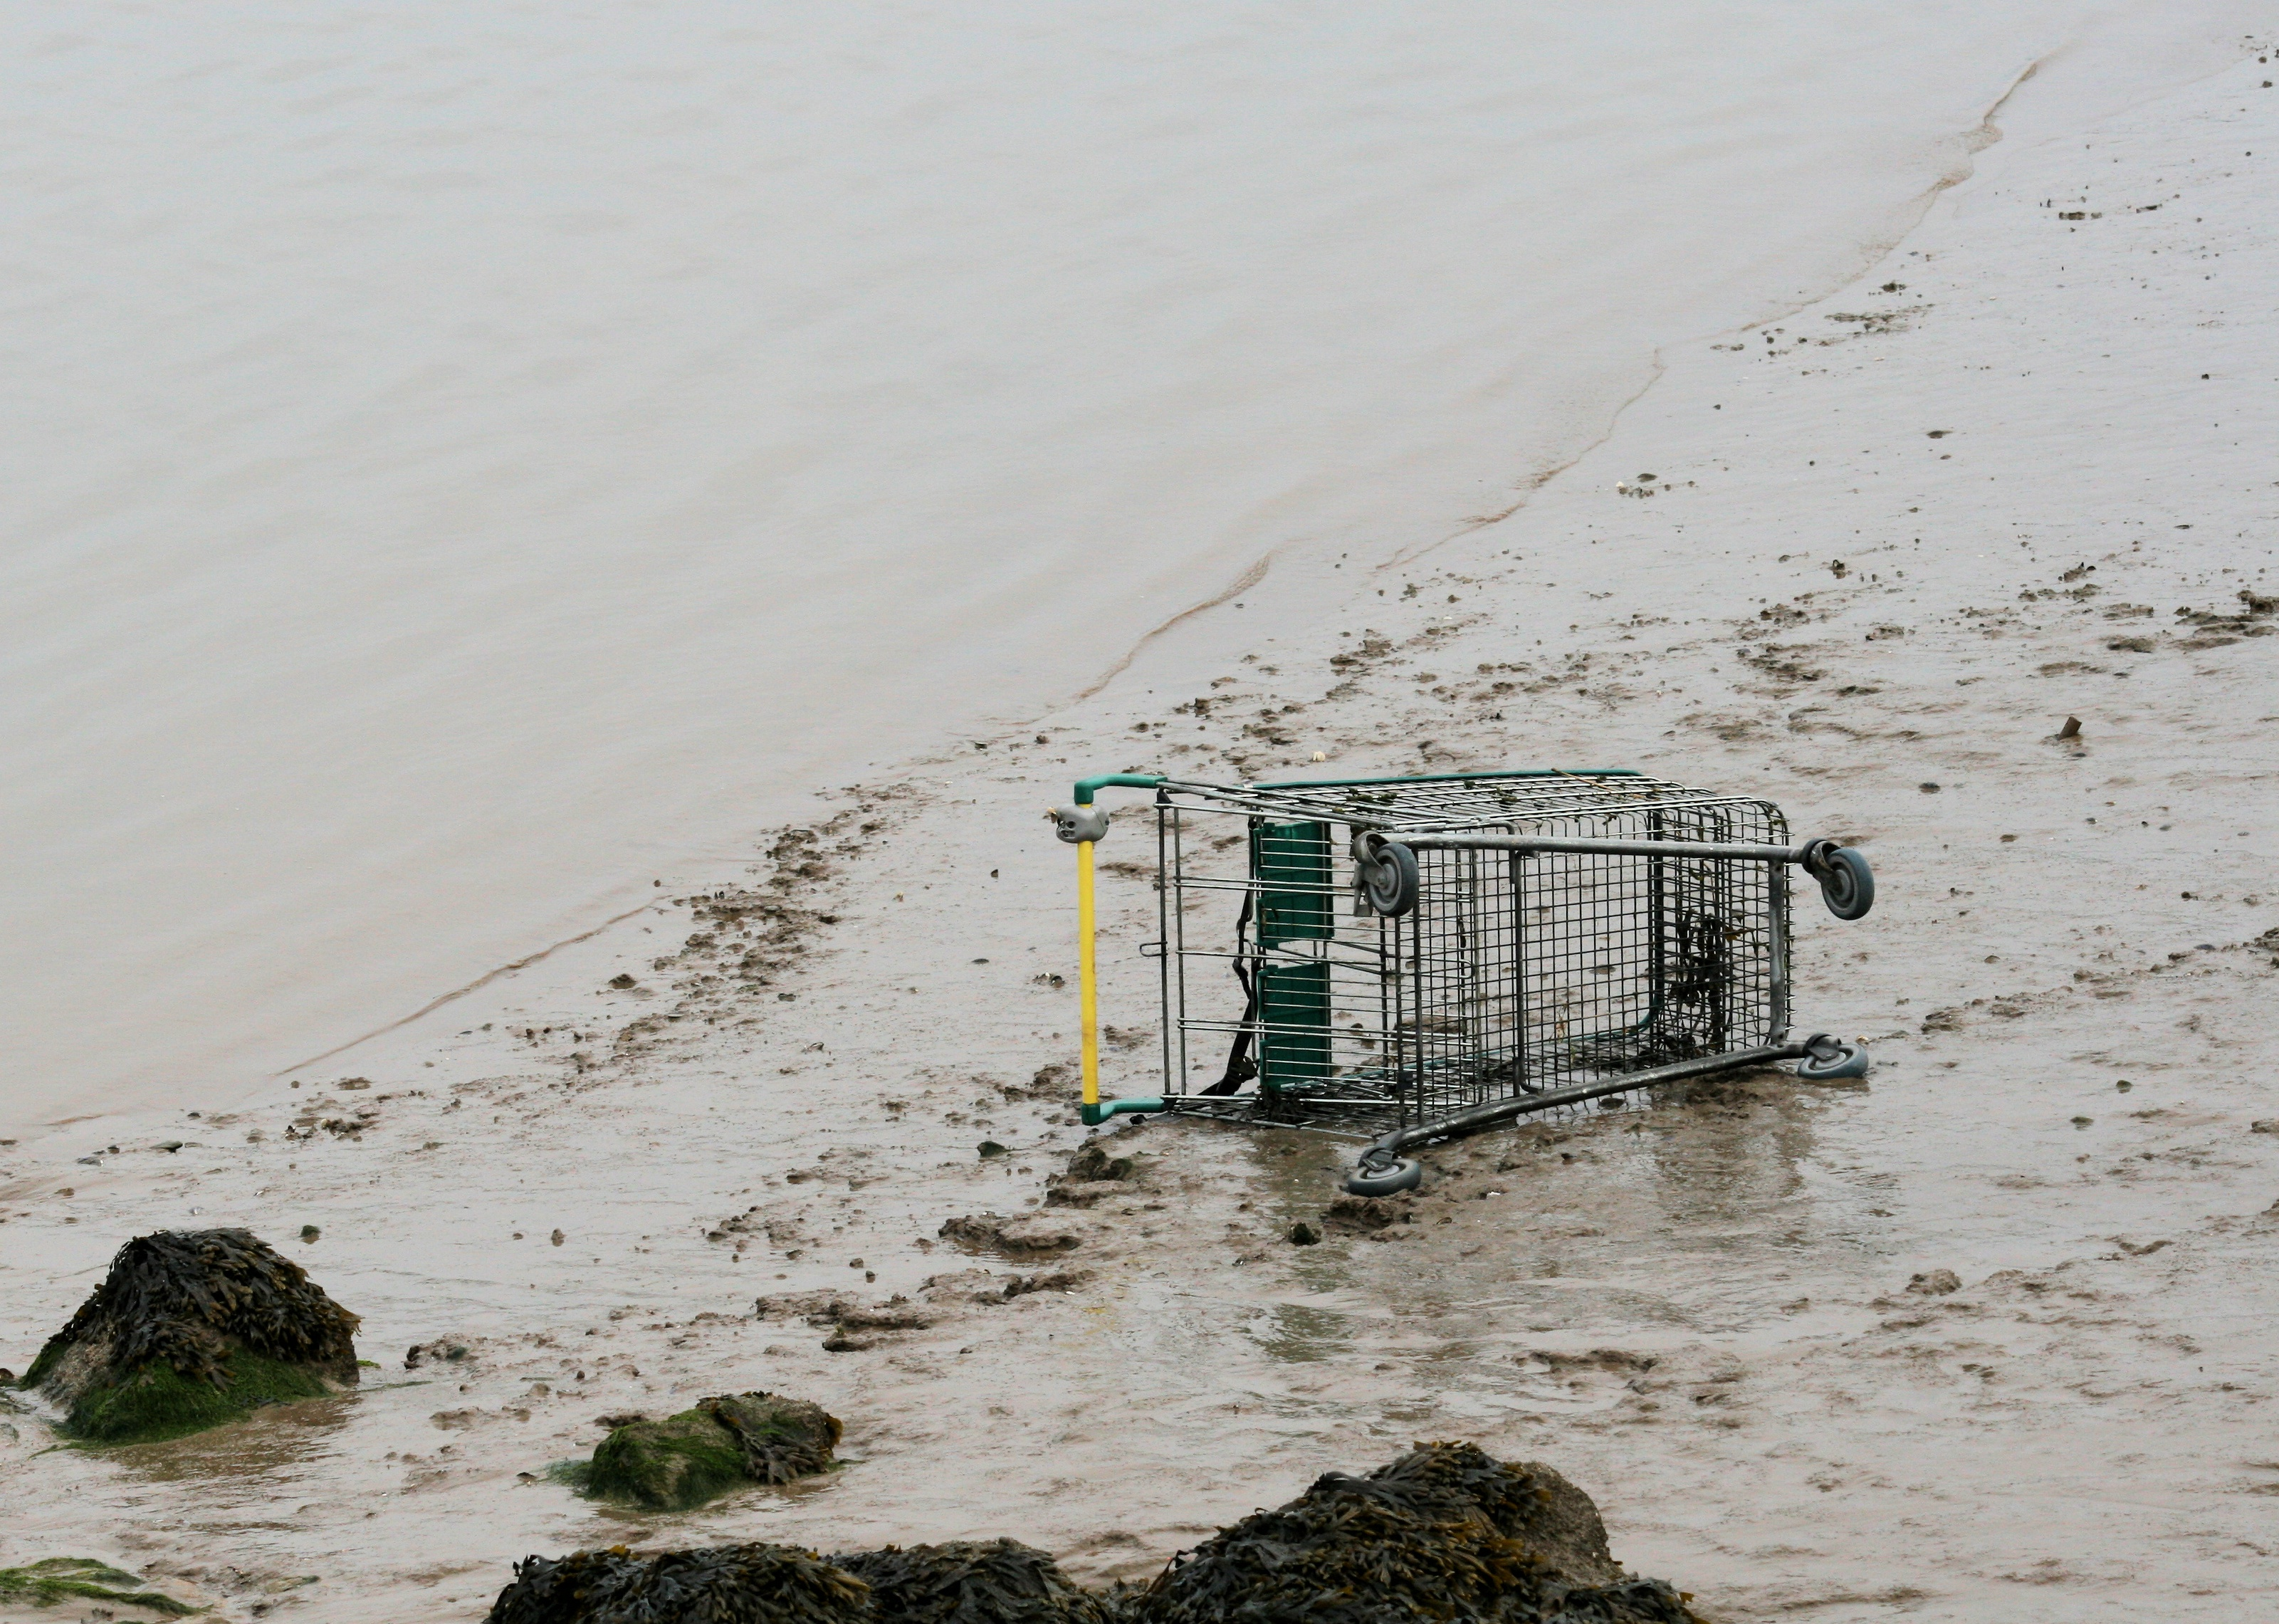 Welcome to England, Abandoned, Beach, Junk, Mud, HQ Photo